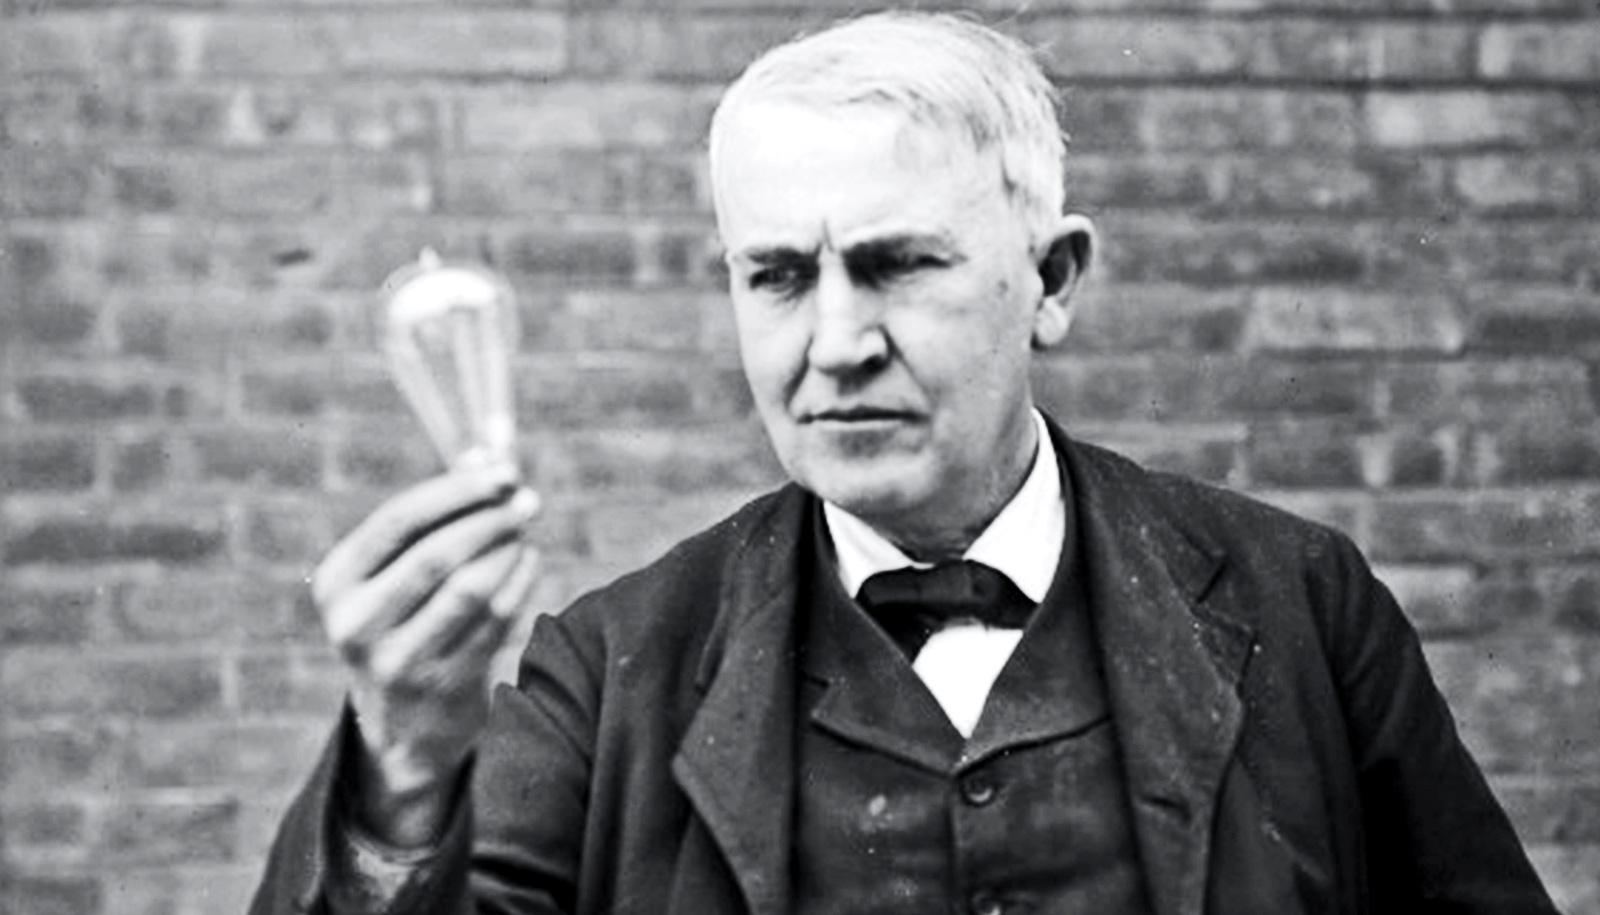 Thomas Edison holds a light bulb as he stands against a brick wall